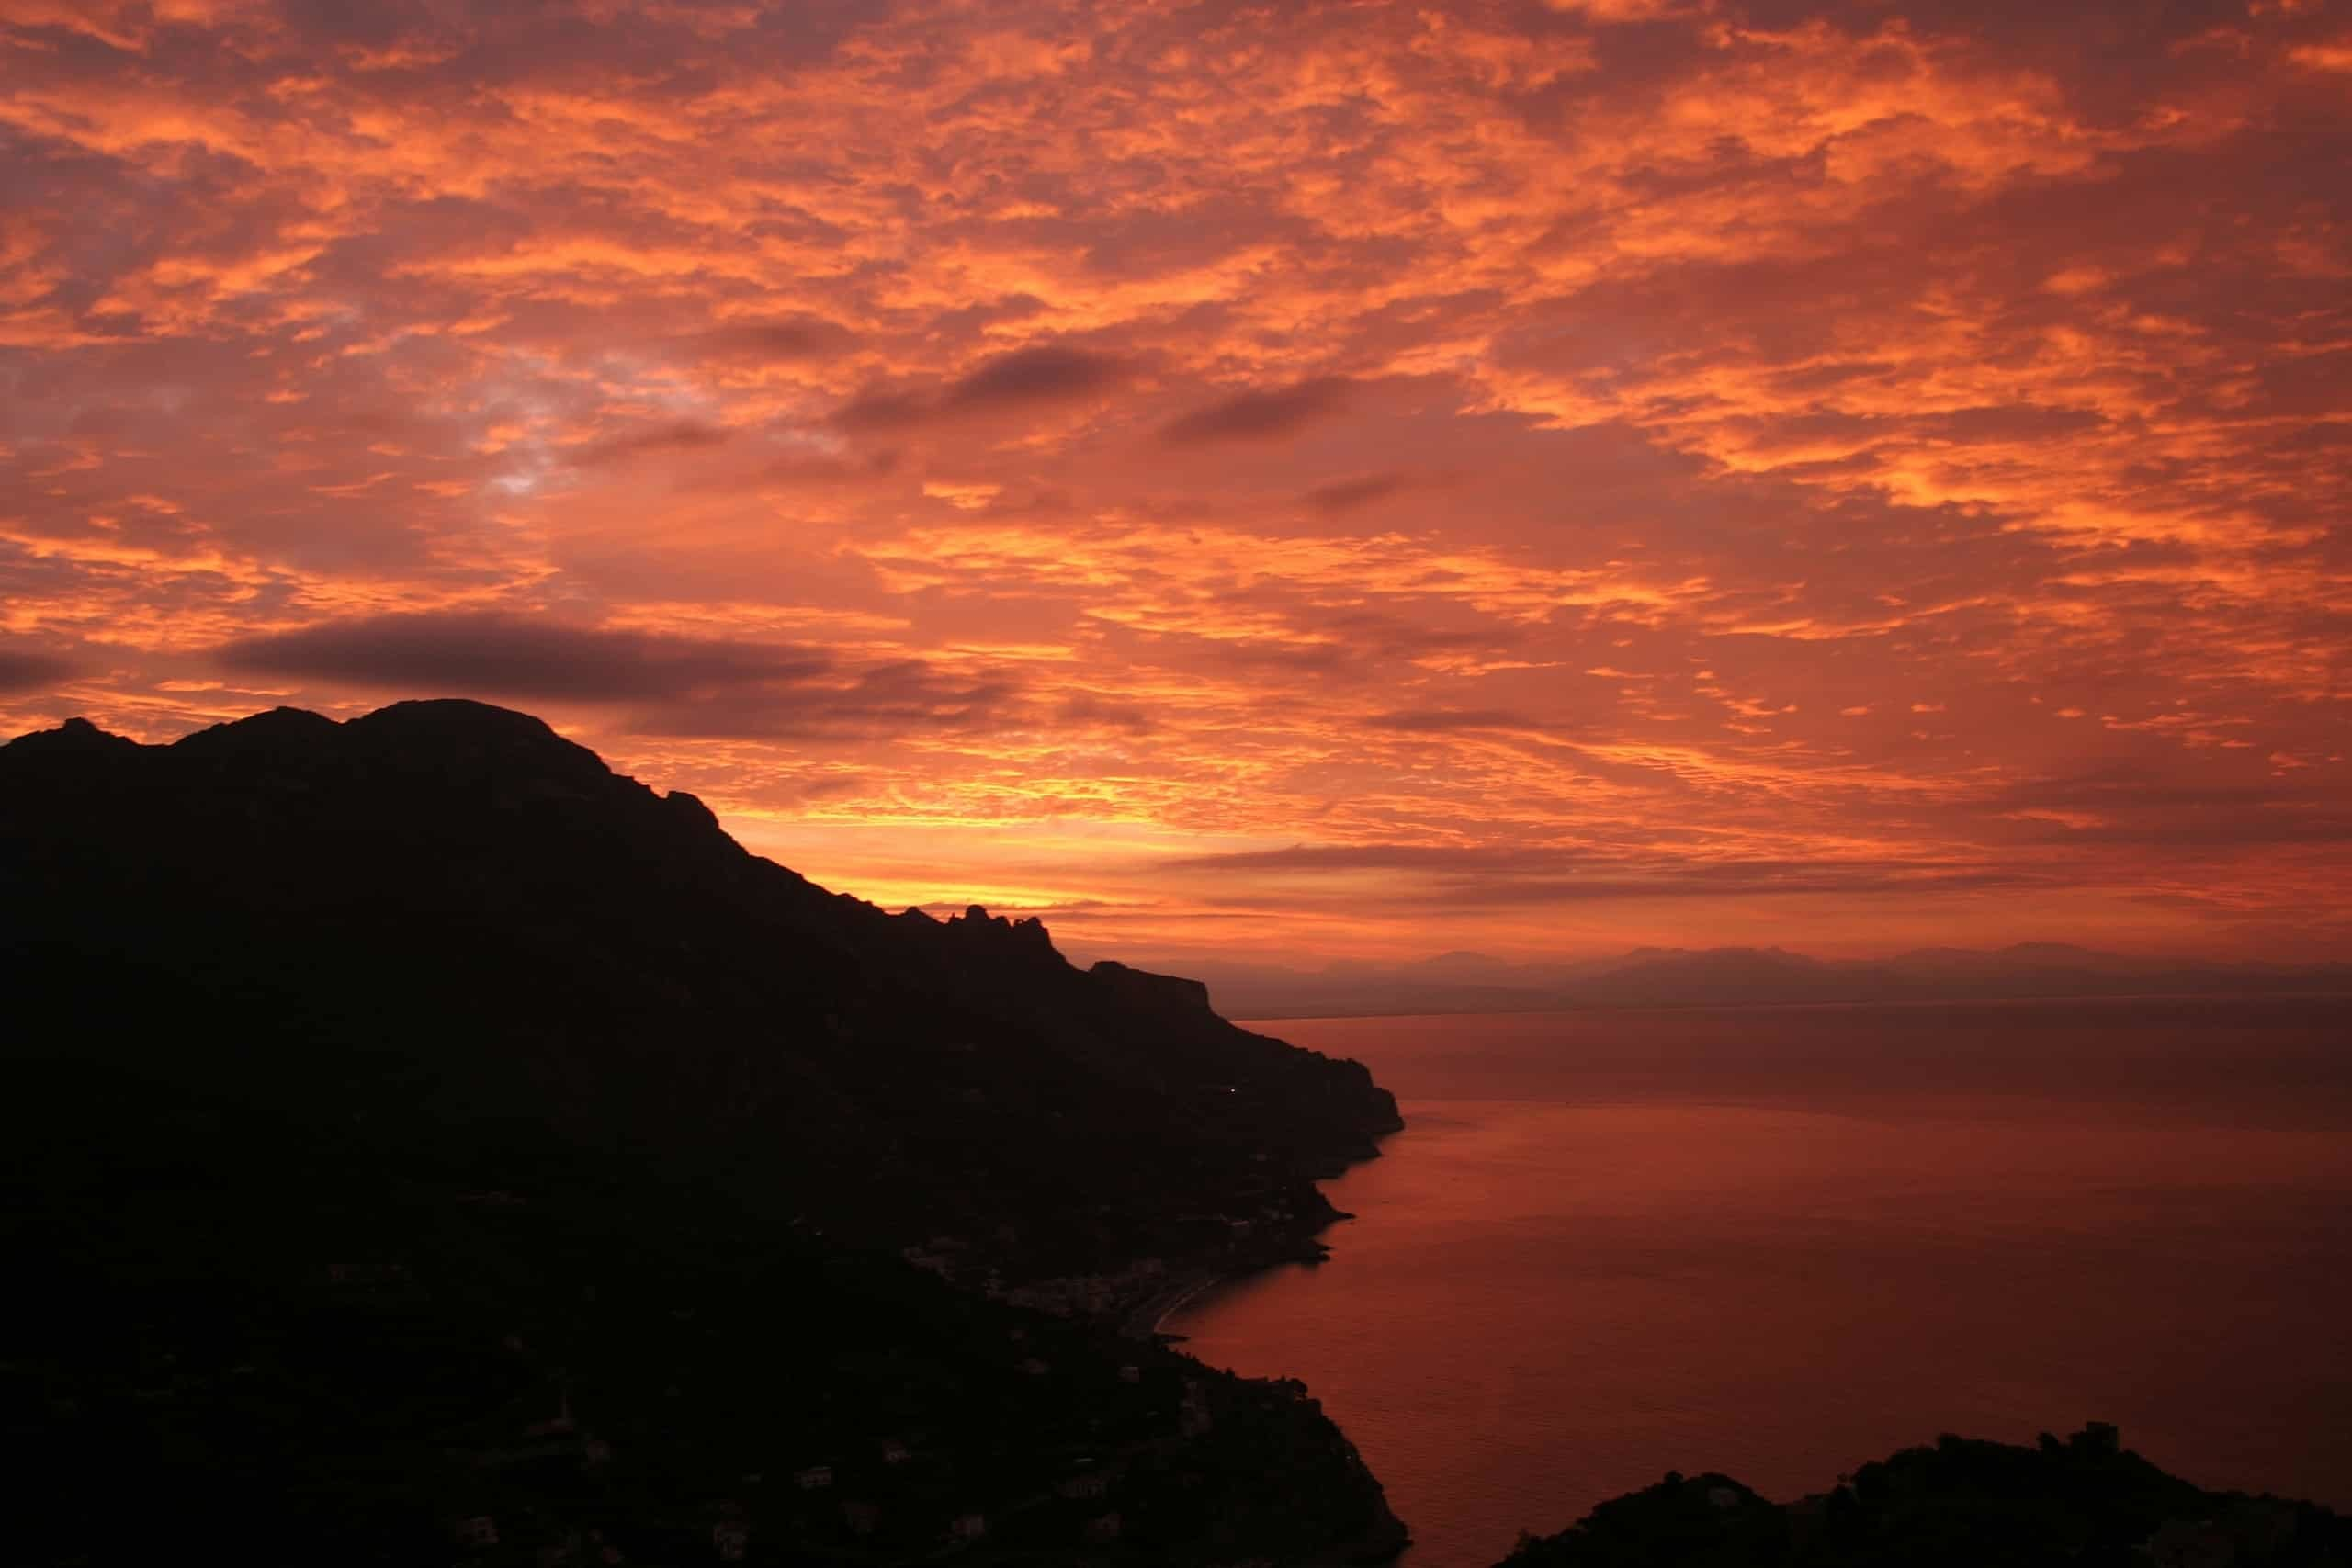 Sunrise at Ravello Dawn Concert in August